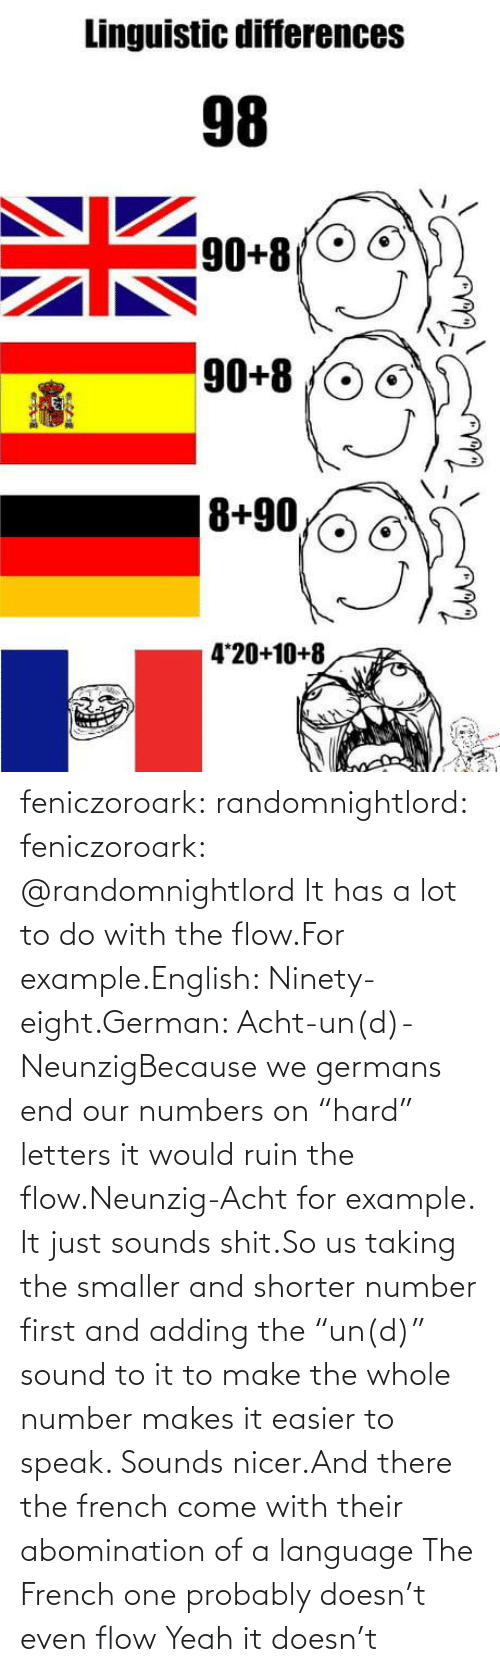 "letters: feniczoroark:  randomnightlord:  feniczoroark:  @randomnightlord    It has a lot to do with the flow.For example.English: Ninety-eight.German: Acht-un(d)-NeunzigBecause we germans end our numbers on ""hard"" letters it would ruin the flow.Neunzig-Acht for example. It just sounds shit.So us taking the smaller and shorter number first and adding the ""un(d)"" sound to it to make the whole number makes it easier to speak. Sounds nicer.And there the french come with their abomination of a language    The French one probably doesn't even flow   Yeah it doesn't"